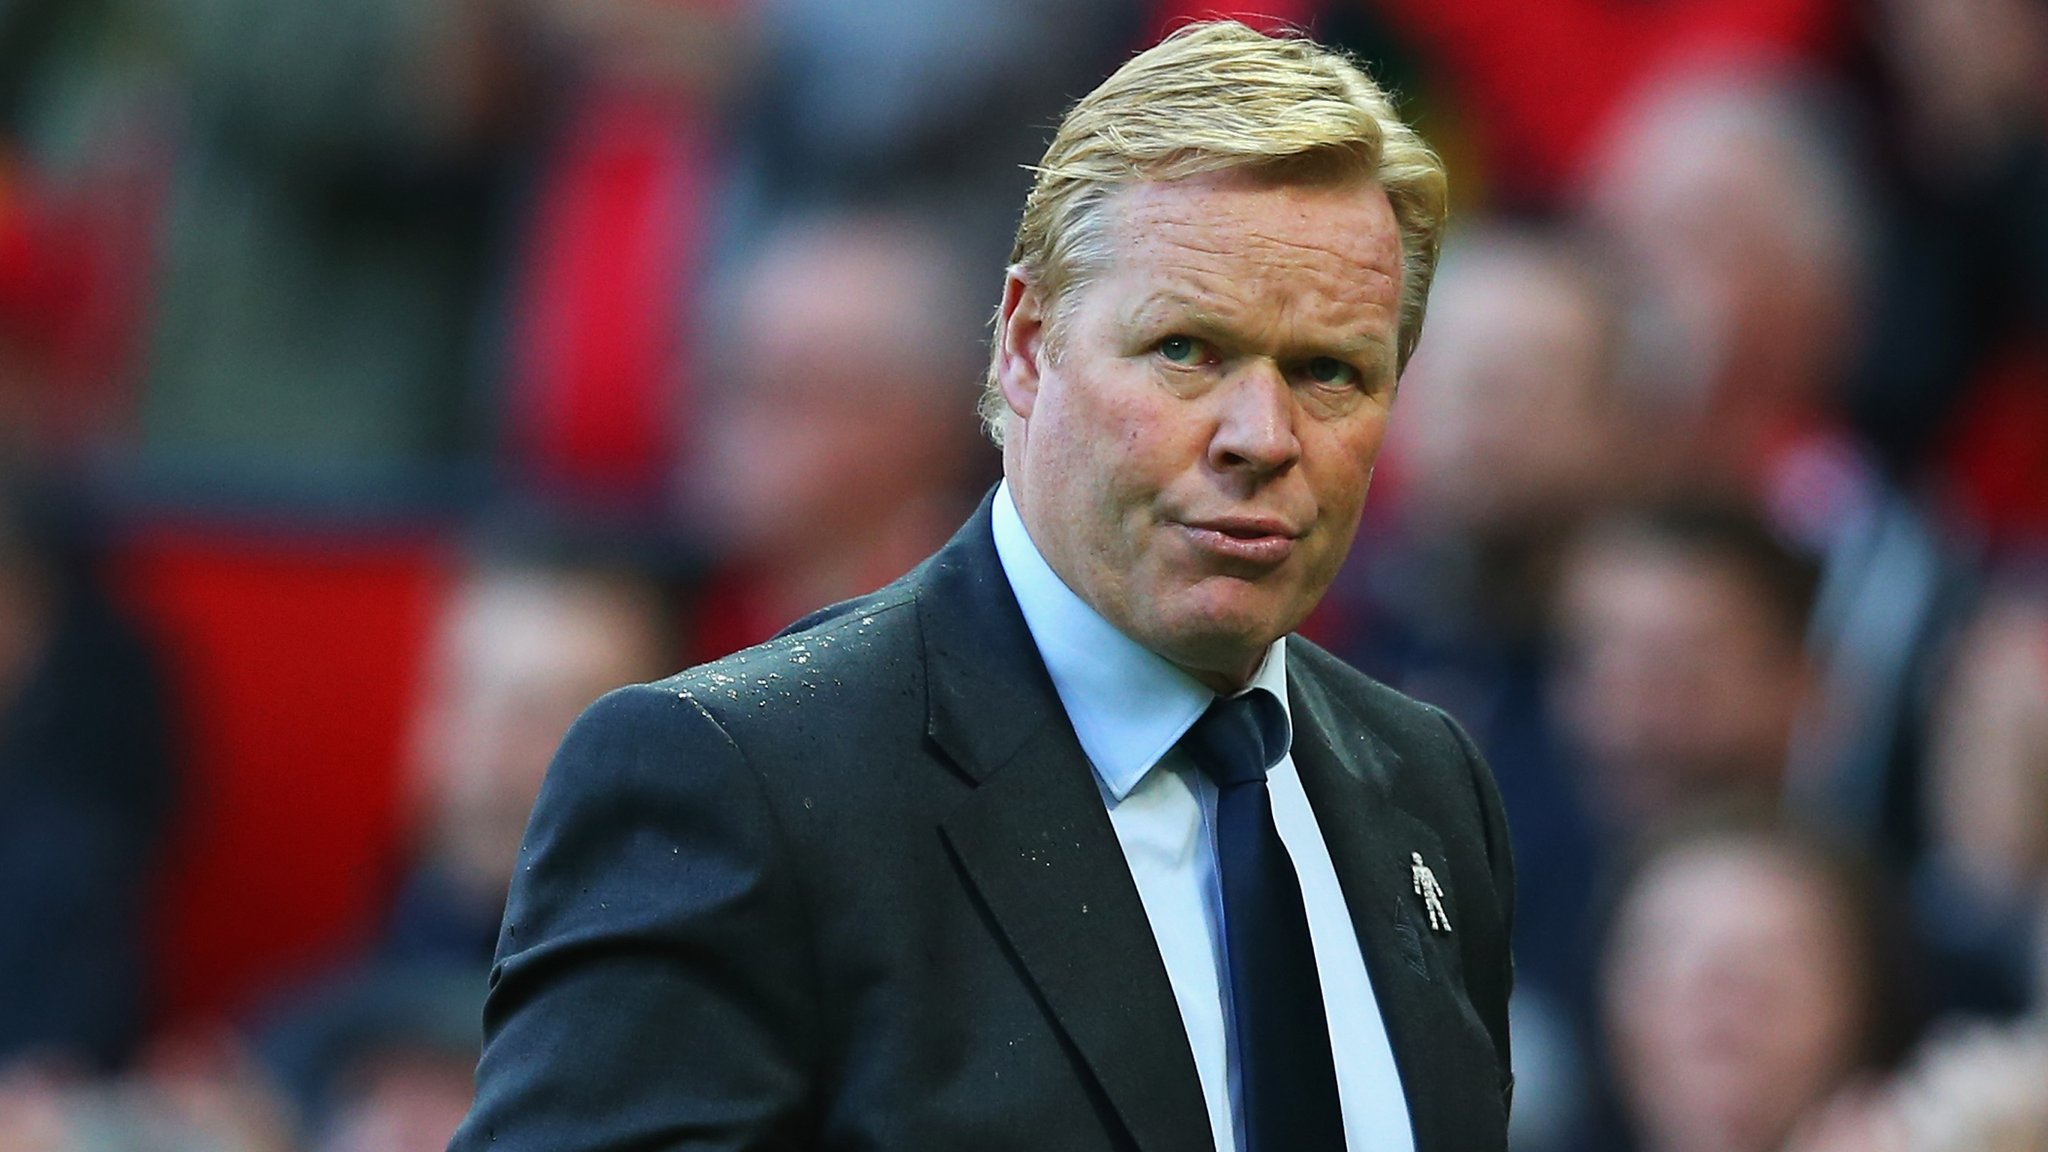 Manchester United 4-0 Everton: Ronald Koeman perplexed by big defeat